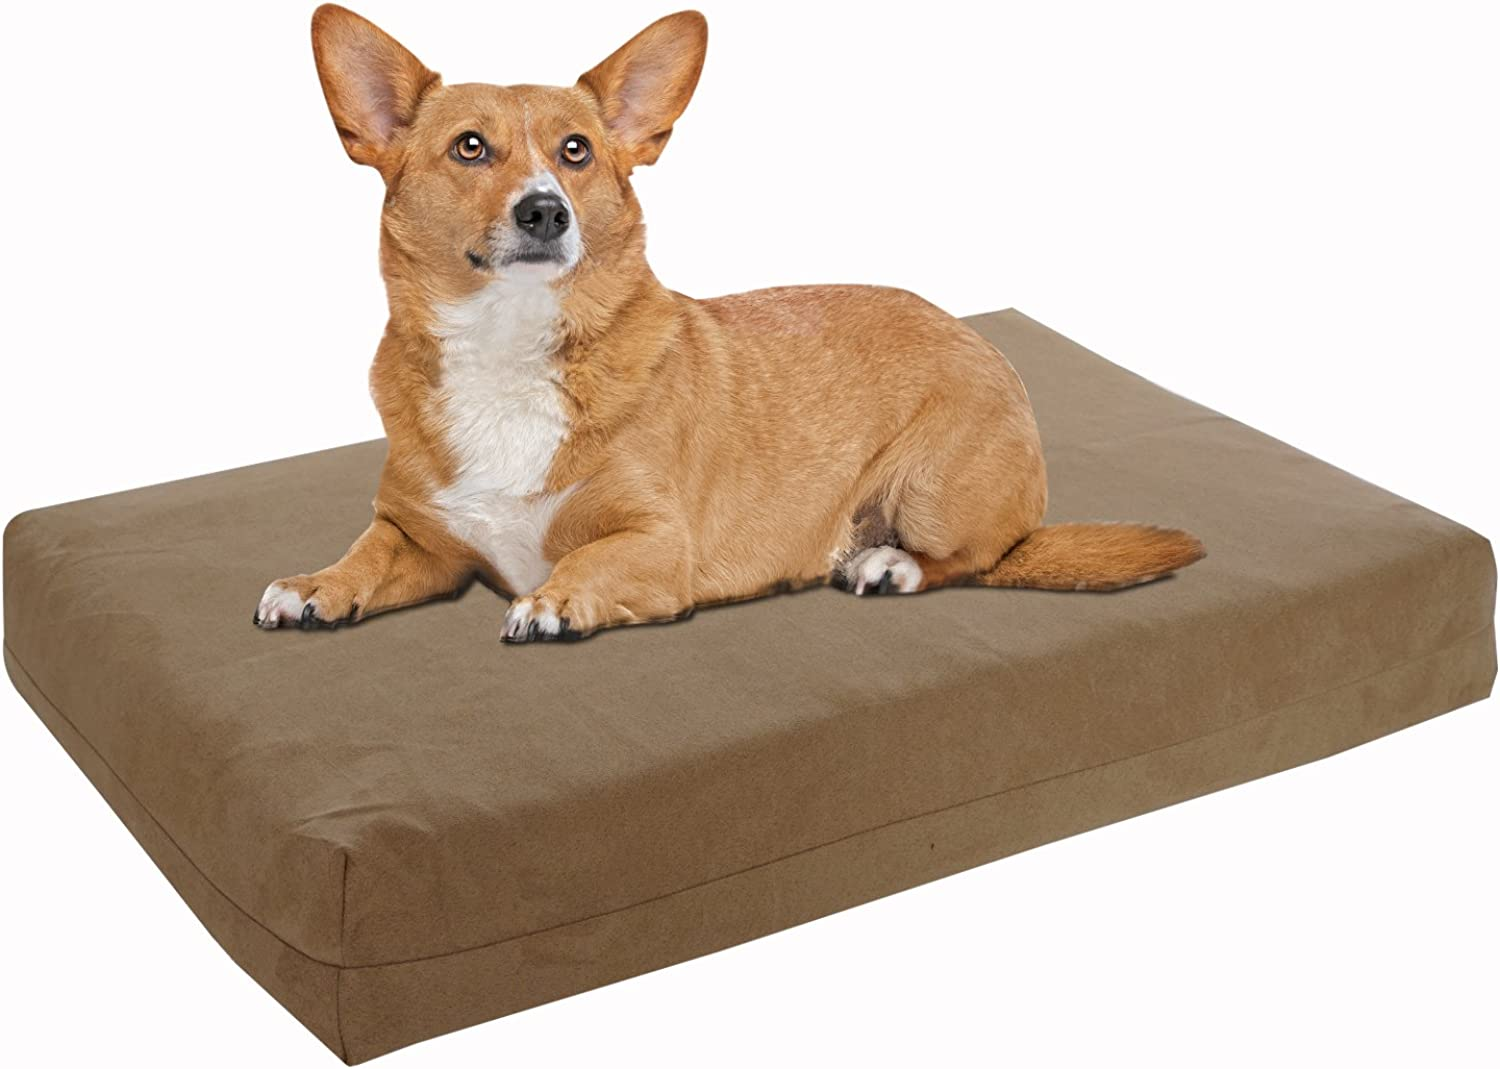 Pet Support Systems Washable Orthopedic Memory Foam Dog Bed, Small, 22Inch x 16Inch x 4Inch, Khaki Tan (Plush Microsuede)